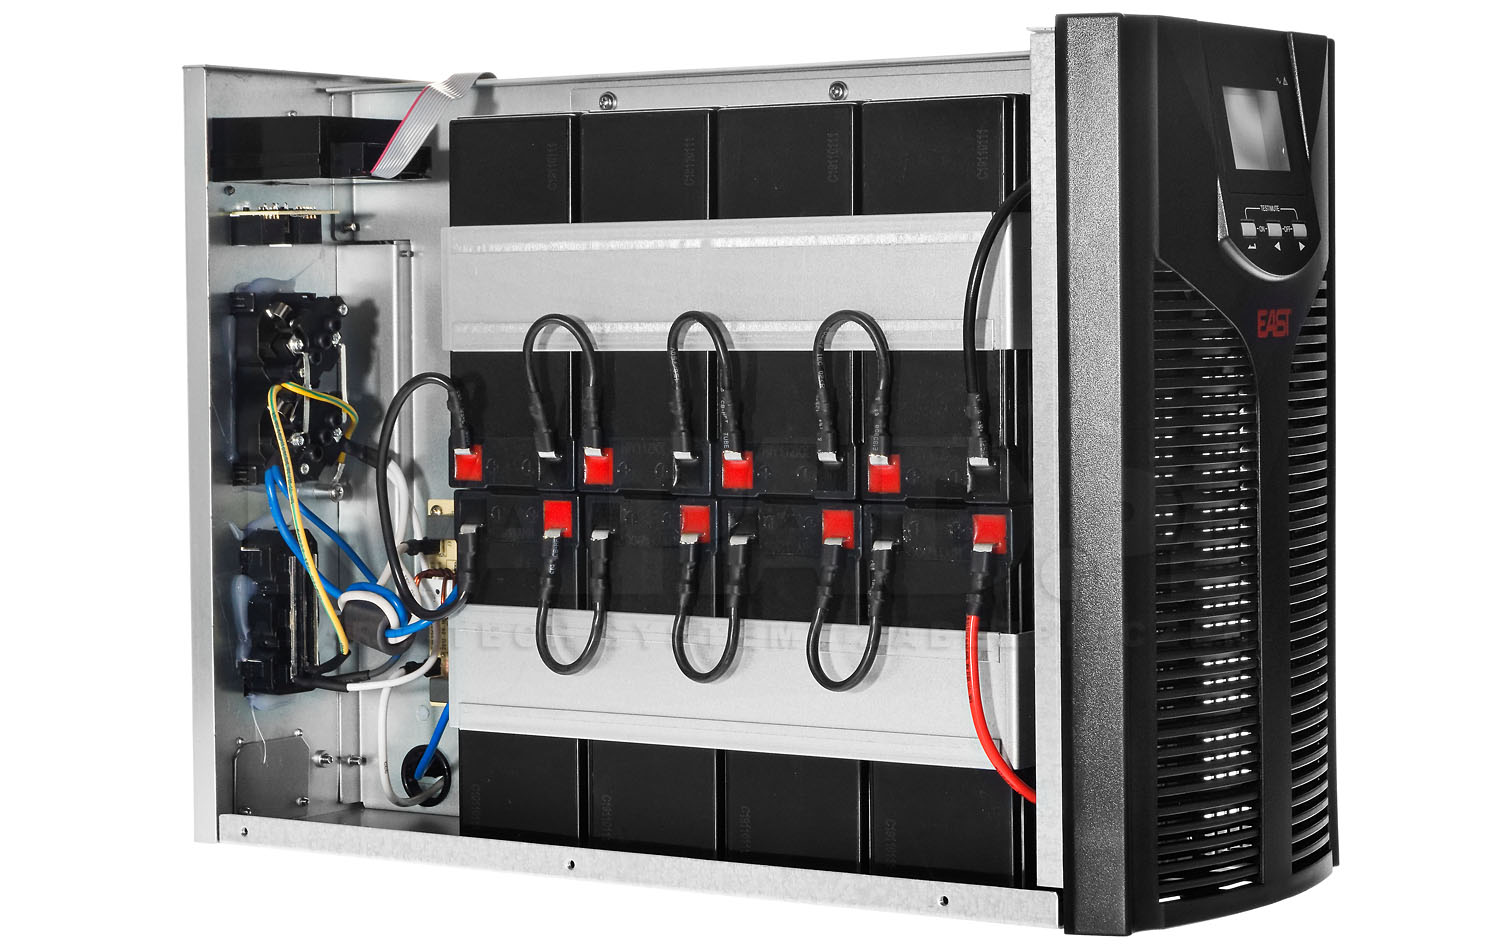 Ogniwa bateryjne do UPS EAST 3000 Tower Online Schuko IEC